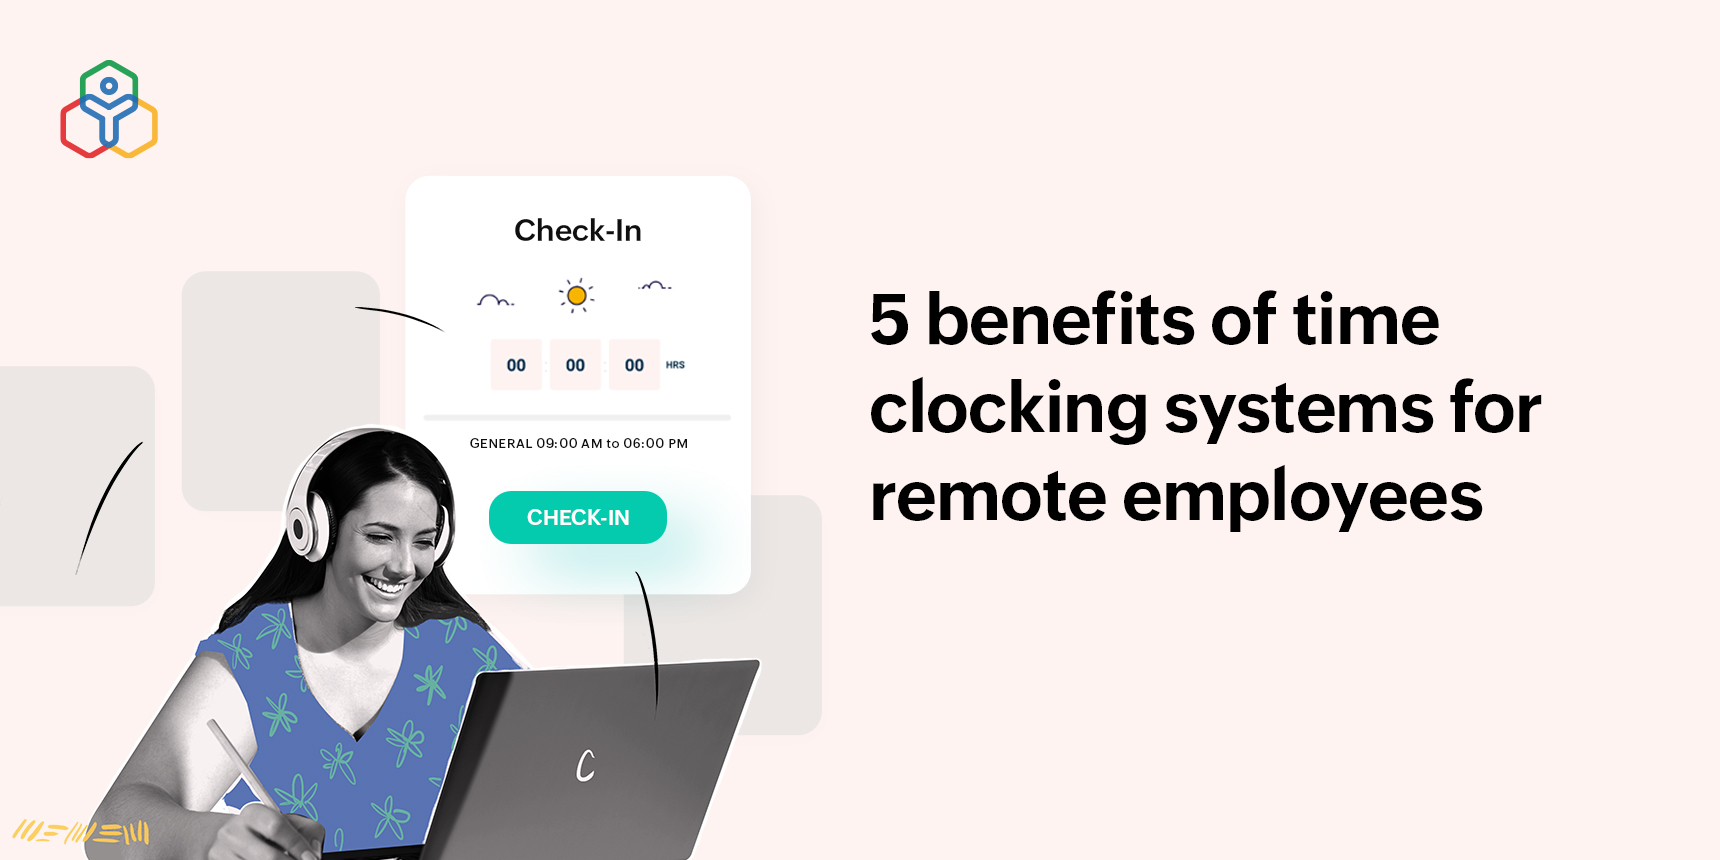 Using time clocking systems to manage remote employee time